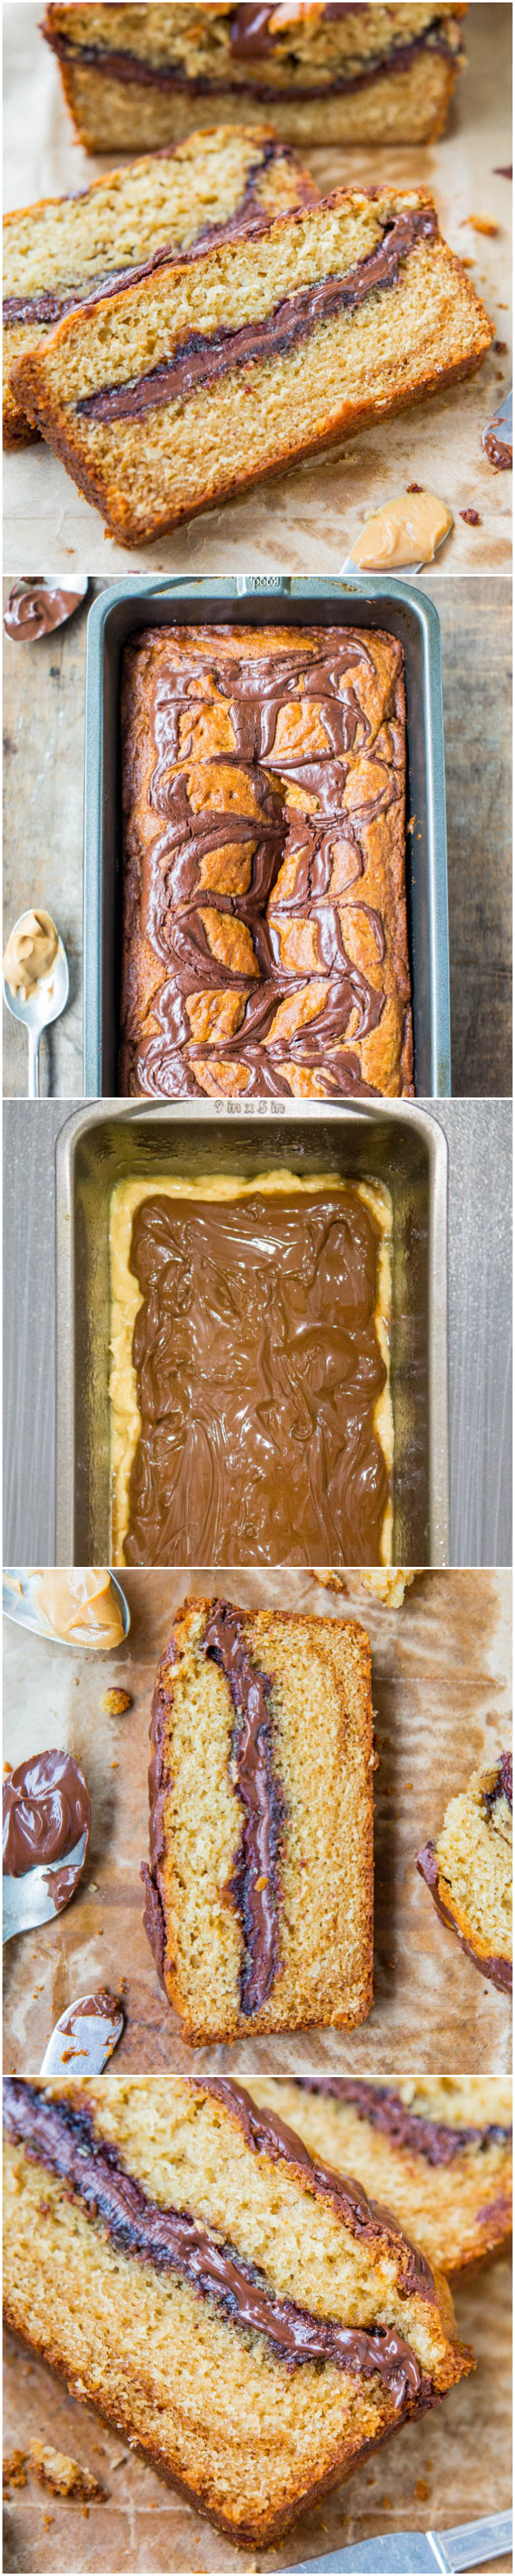 Nutella-Layered-and-Swirled Peanut Butter Bread {Peanut Butter Loaf Cake} - Easy, no-mixer bread baked in a loaf pan that tastes like cake! Recipe at averiecooks.com